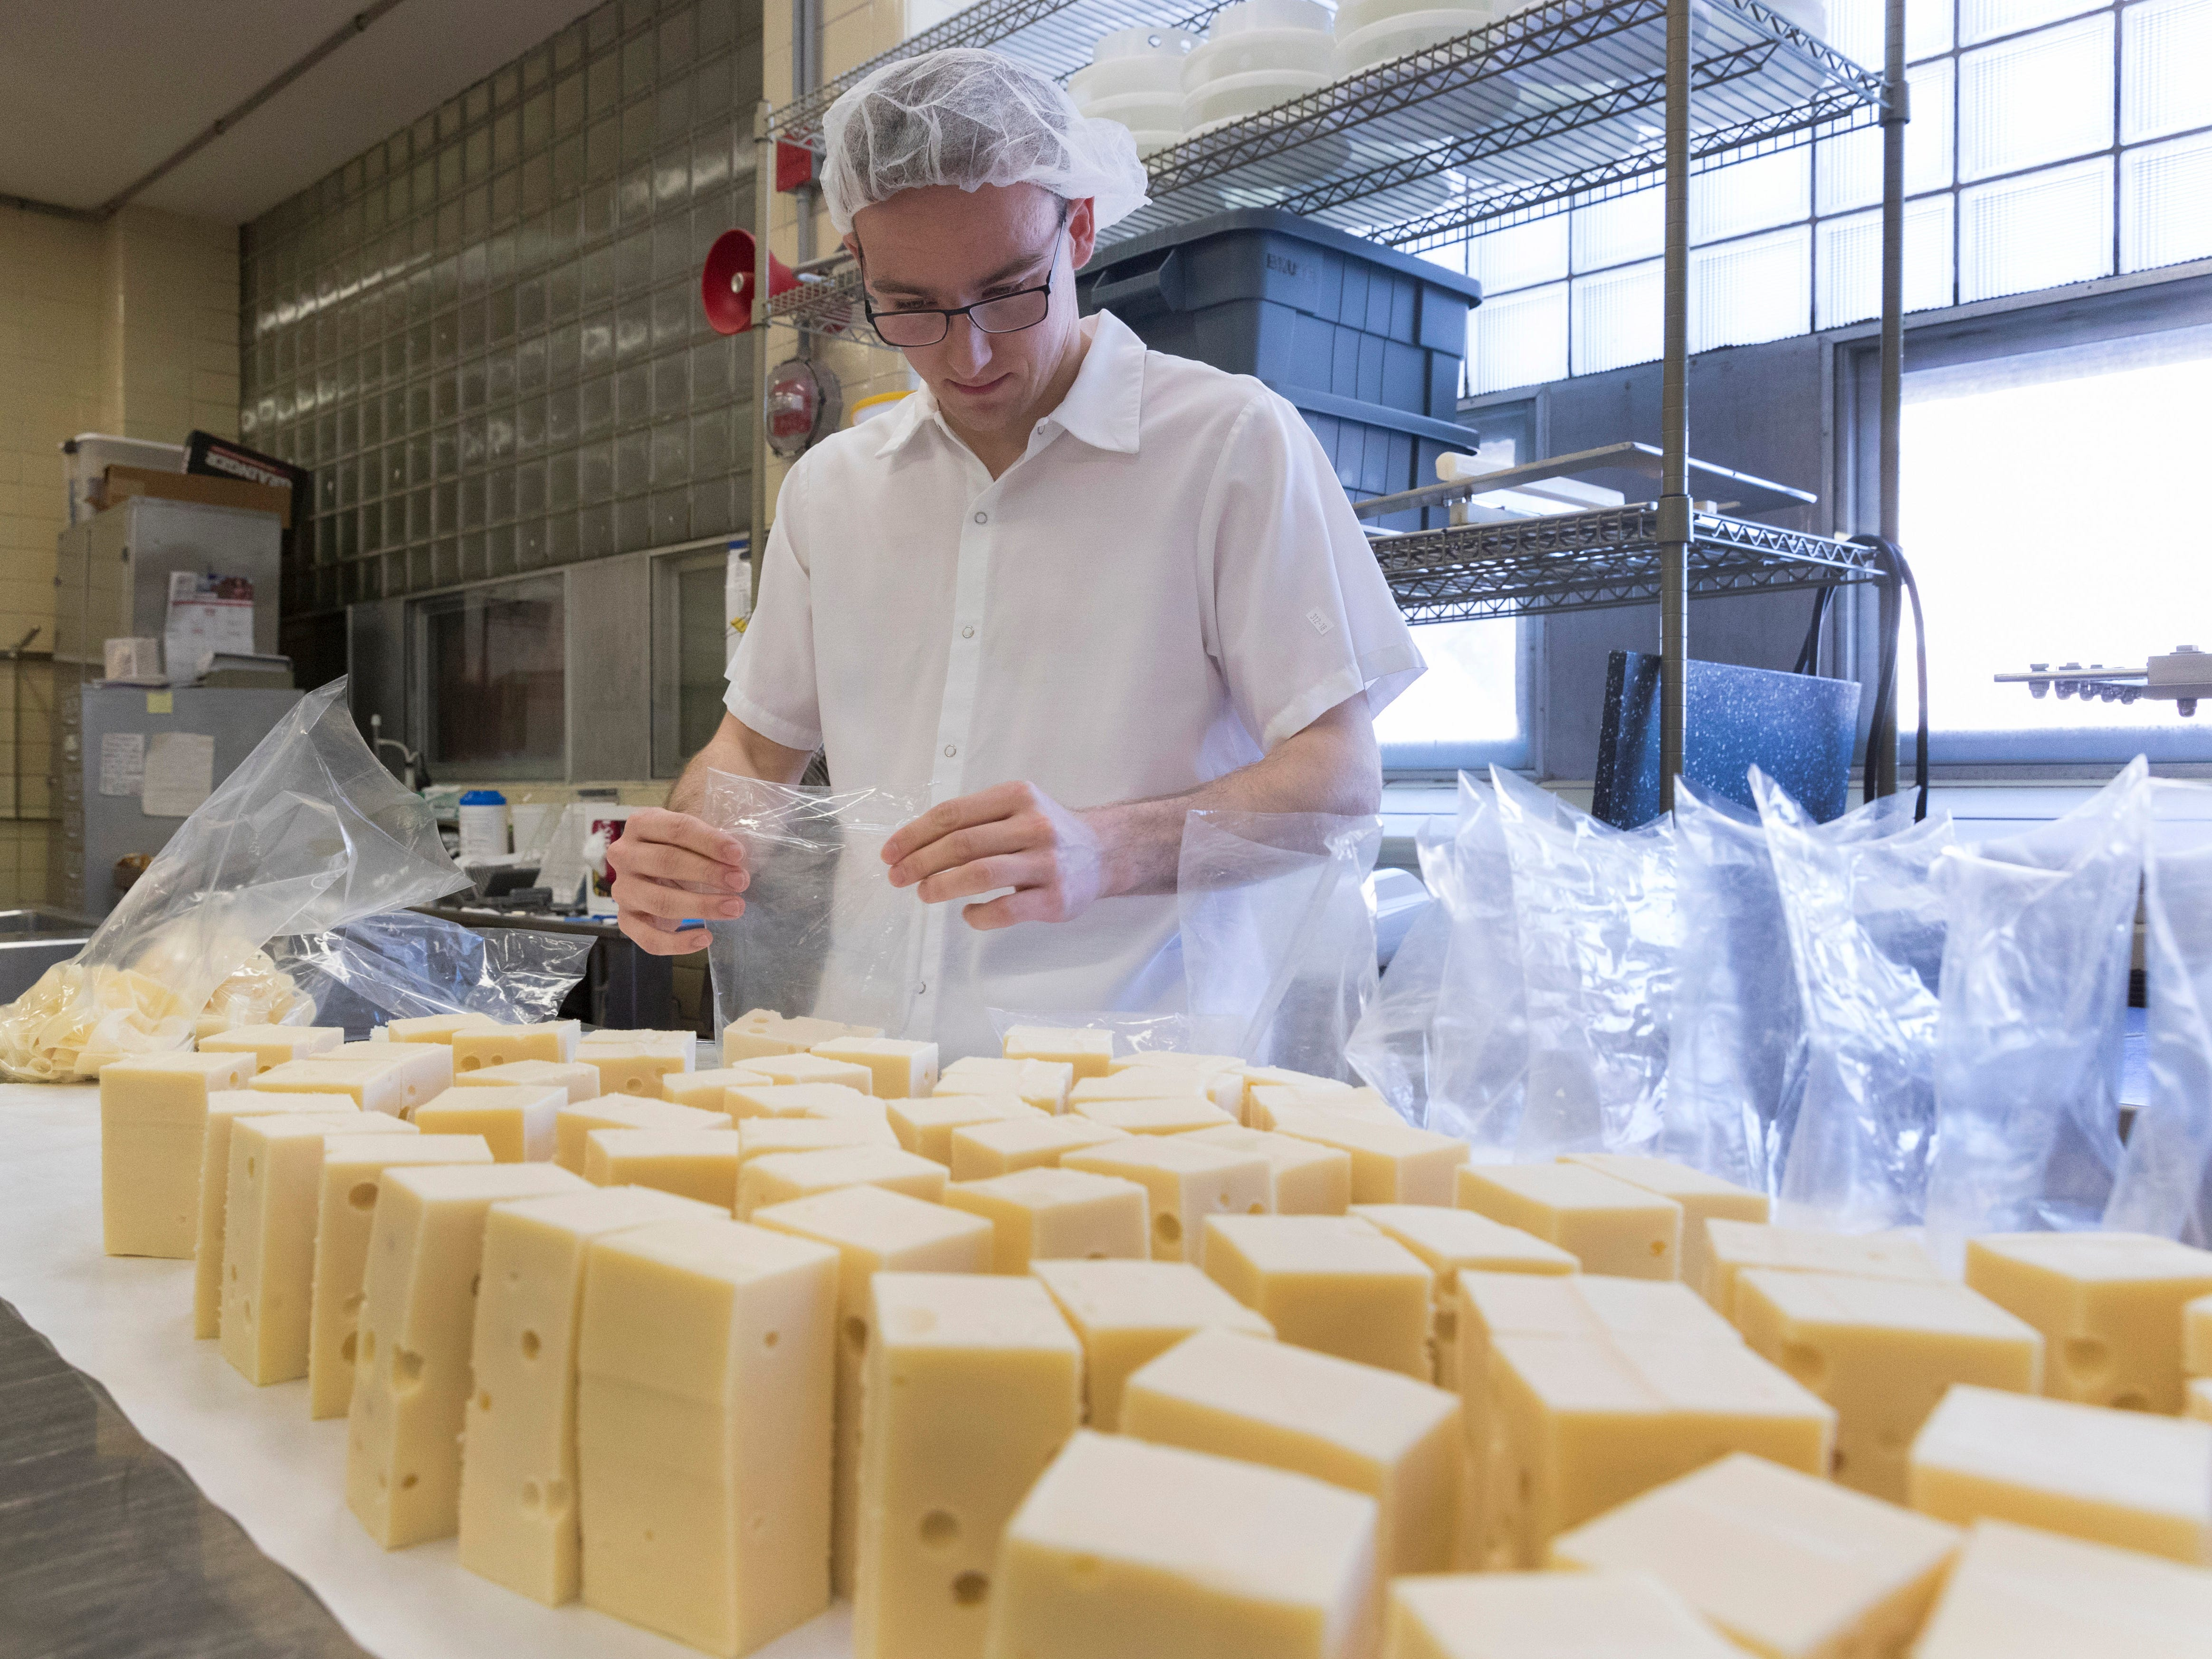 2019: Cheese is one of the strongest growth products produced from milk. Student worker and food engineering major Tyler Rateike bags half-pound blocks of baby Swiss cheese at Babcock Hall at UW-Madison. The building's namesake, Stephen M. Babcock, transformed the dairy industry with his invention of the first reliable butterfat-content milk test, providing an easy way to check and control milk quality. He also partnered with bacteriologist Harry Luman Russell to develop the cold-curing process for ripening cheese, a move which enabled Wisconsin to become the nation's leading cheese producer for years.